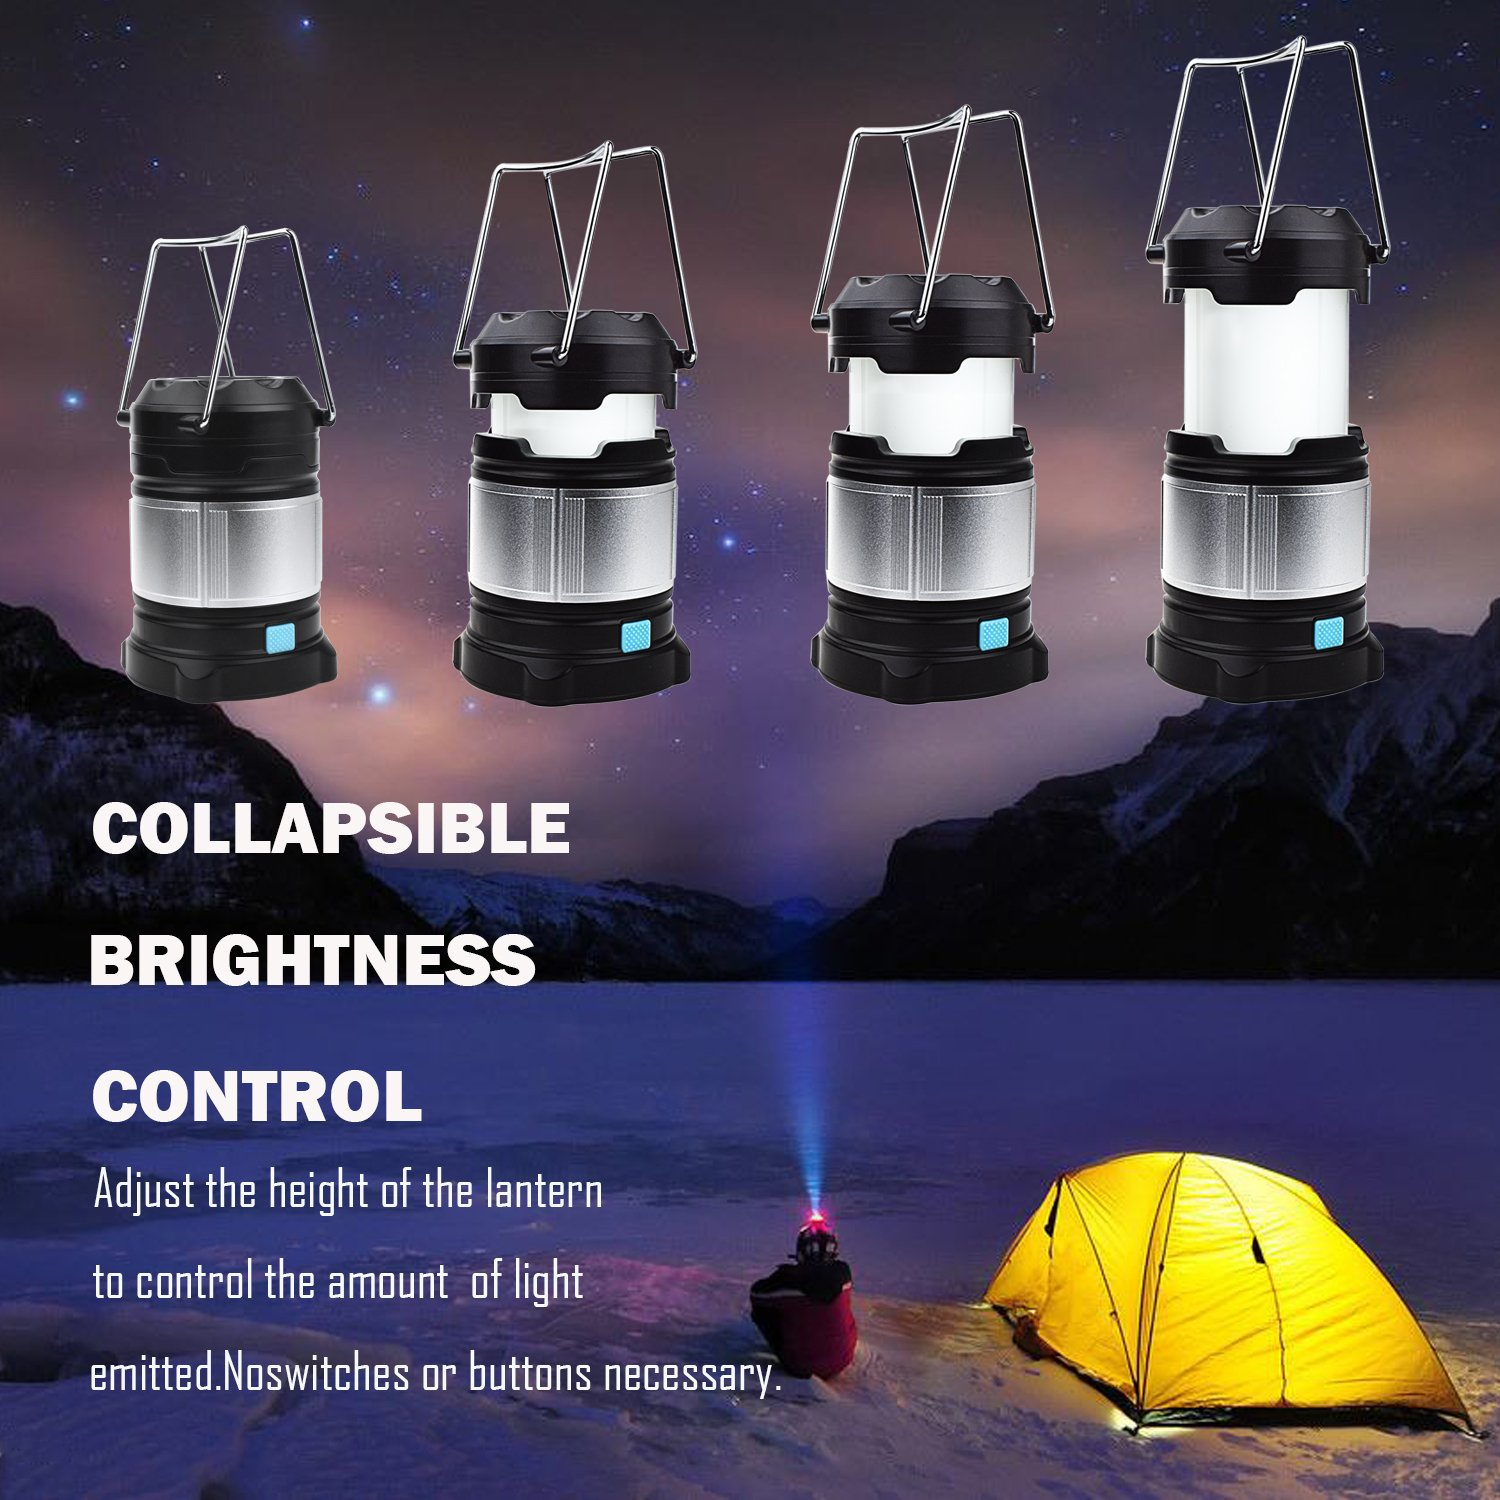 Alcoon 2 Packs Rechargeable LED Camping Lantern Light Lamp with 5600mAh Power Bank, Portable Collapsible Waterproof Outdoor Light with 18650 Li-ion Batteries for Camping Traveling Tent, Emergency by Alcoon (Image #2)